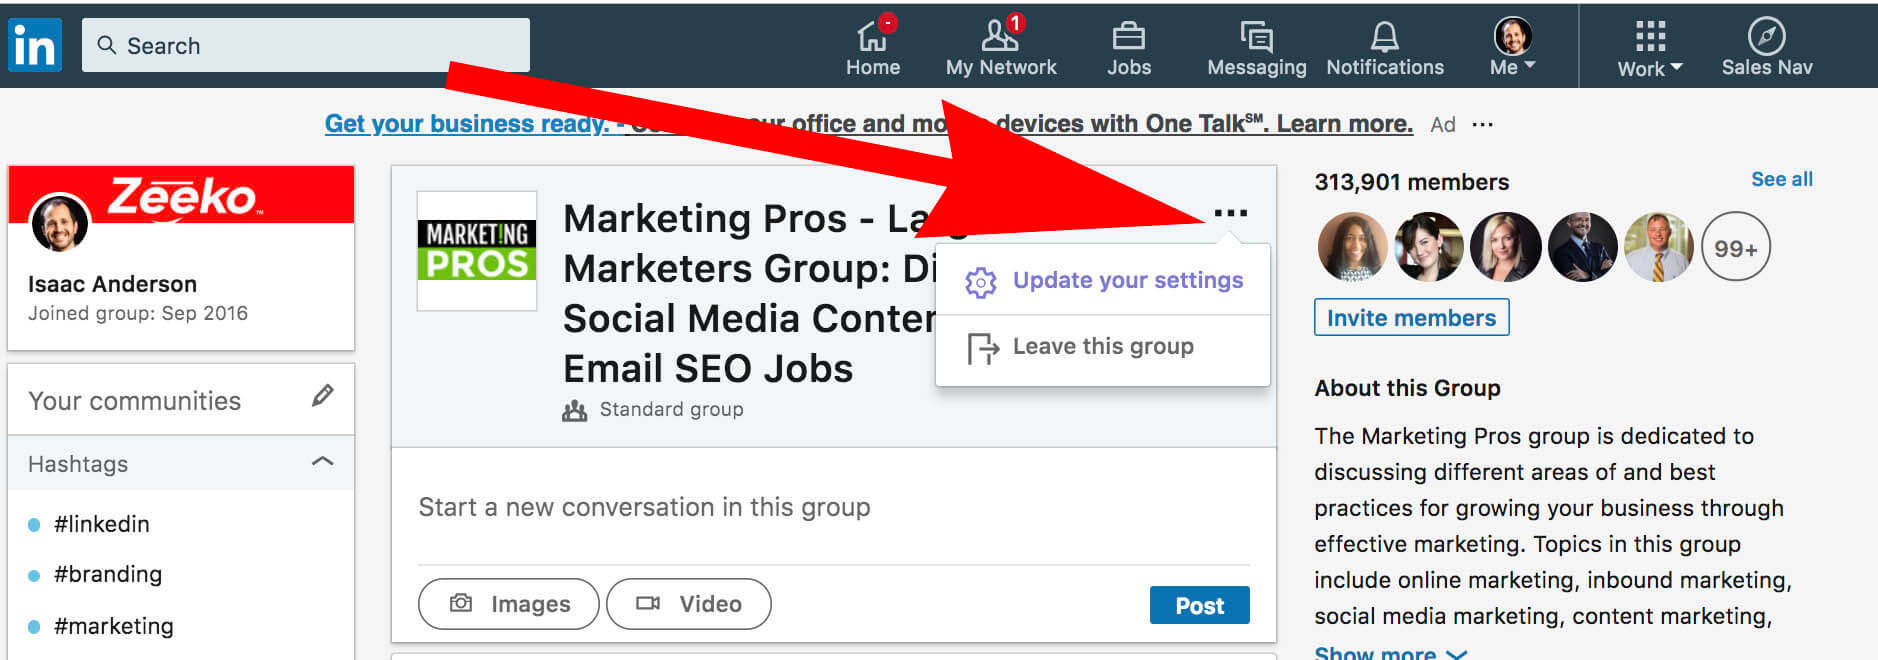 How to update and remove interests on Linkedin - group settings